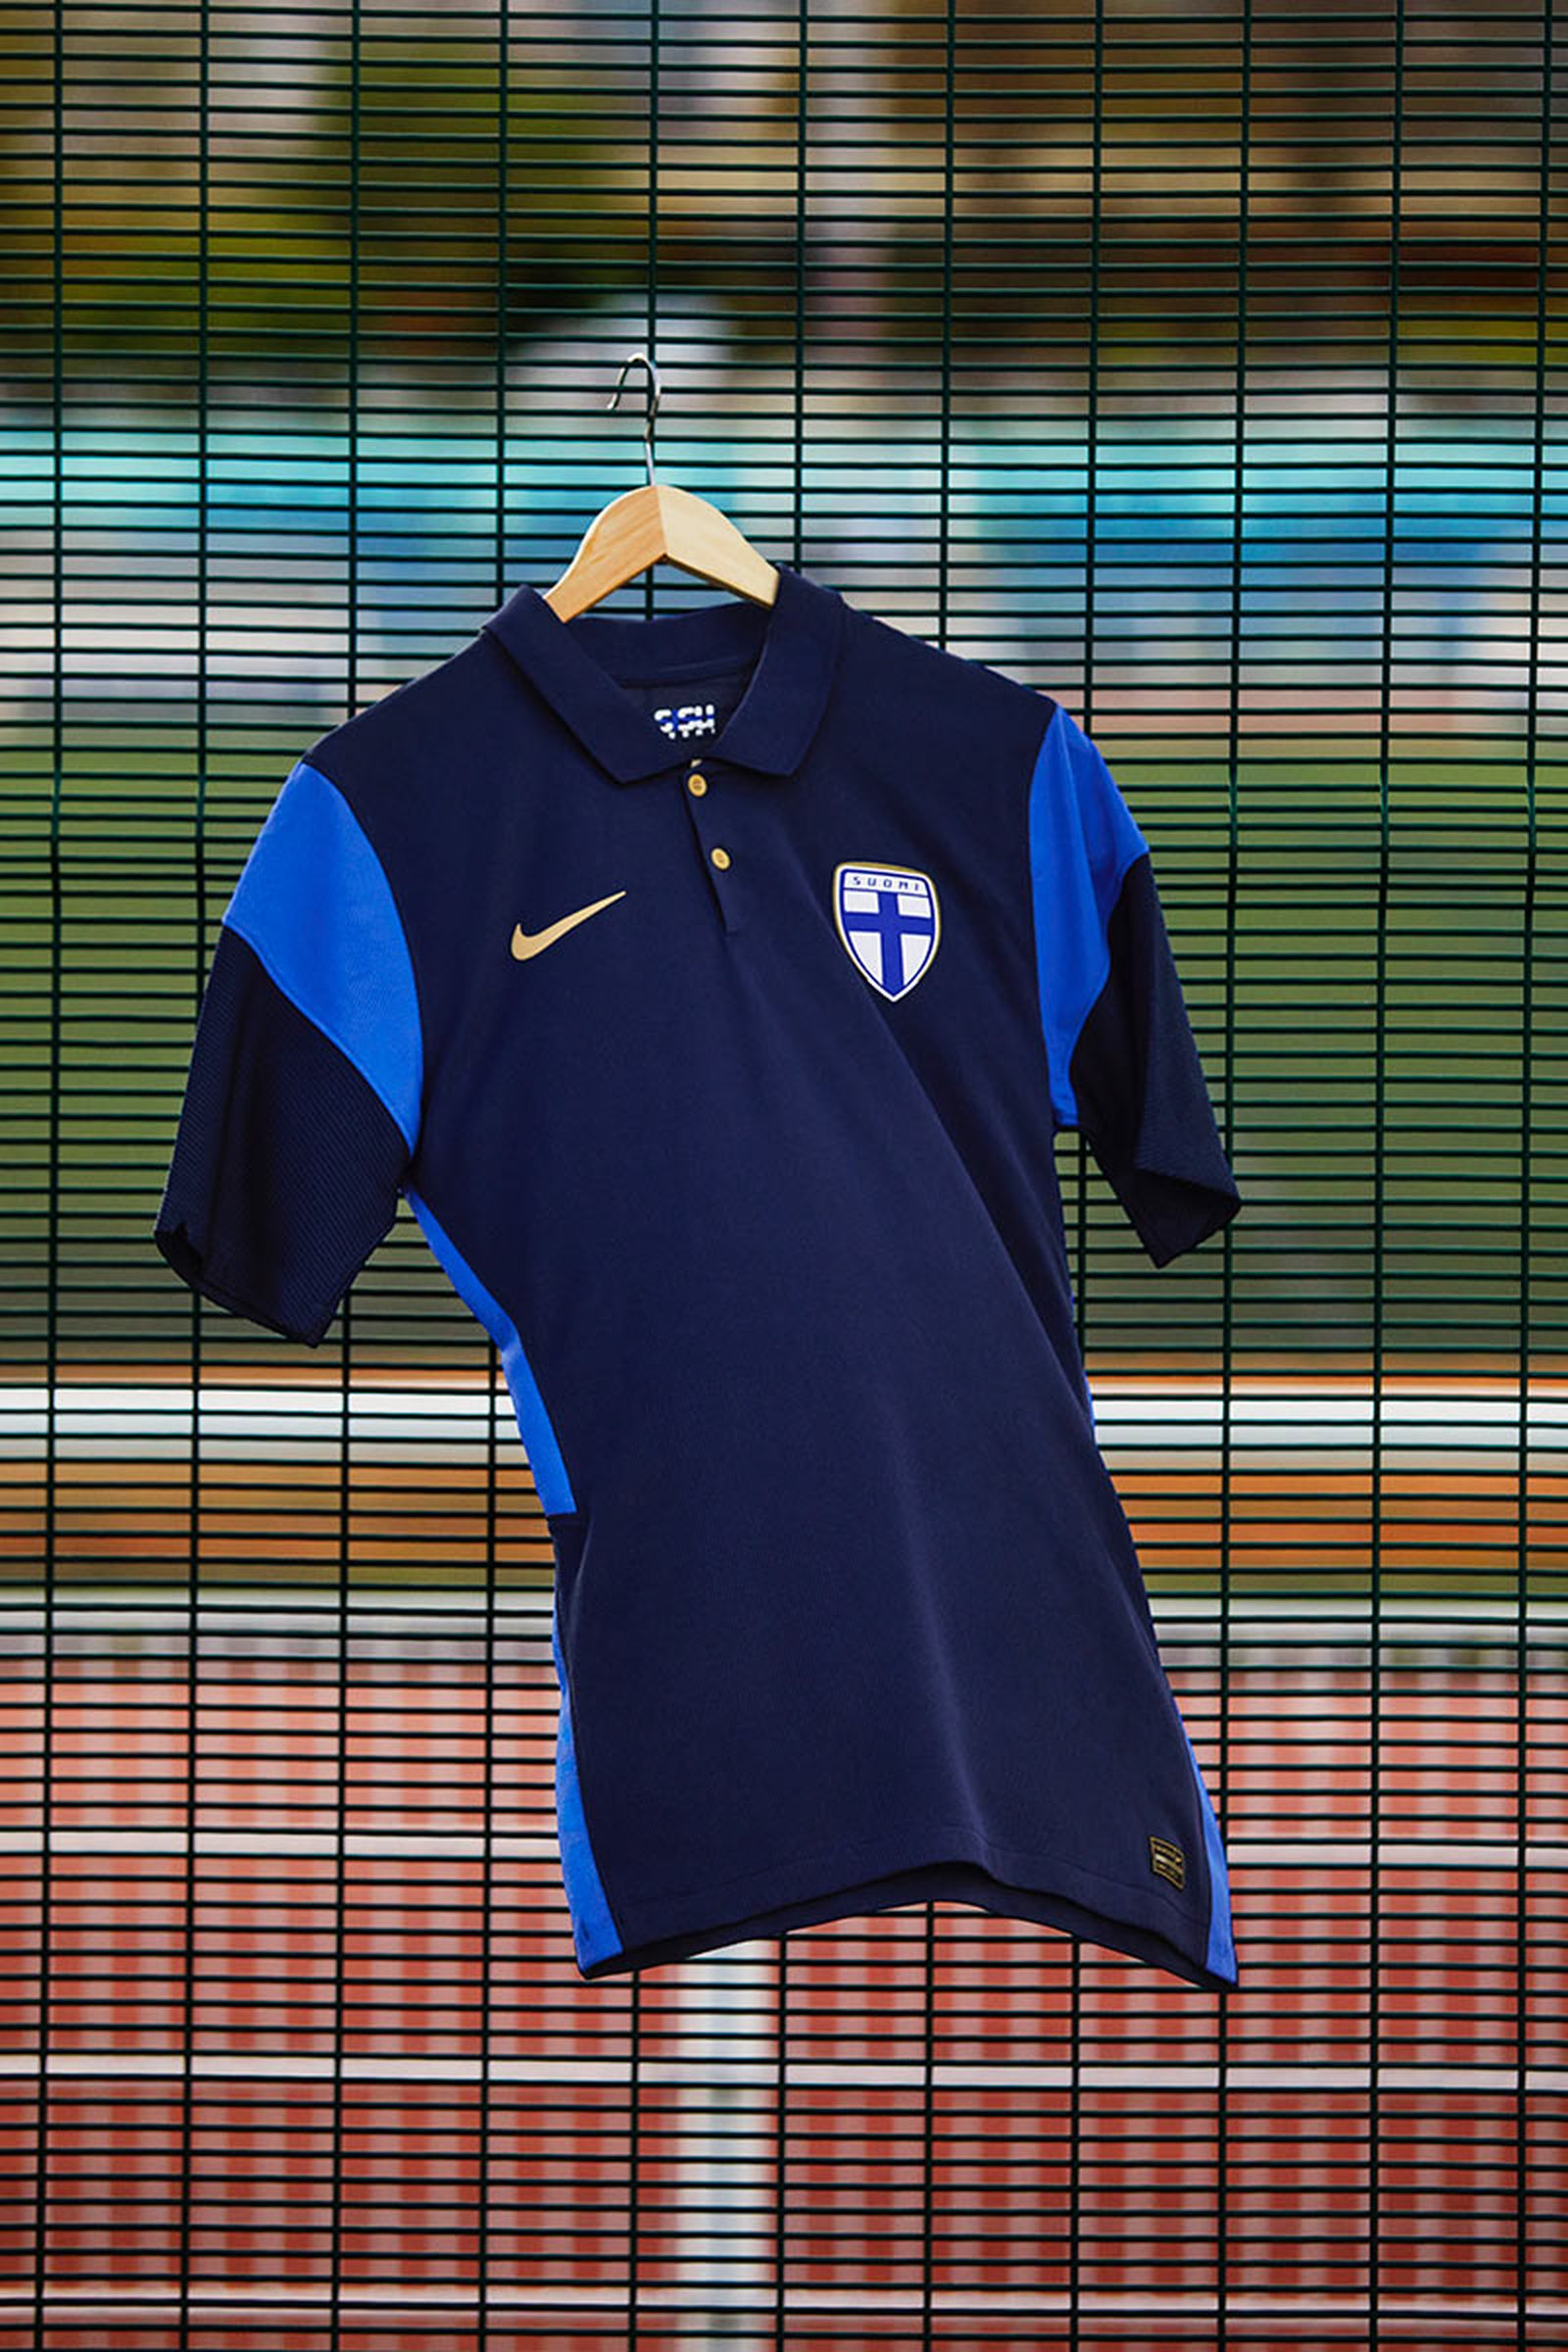 nike-national-team-kits-2020-ranking-13